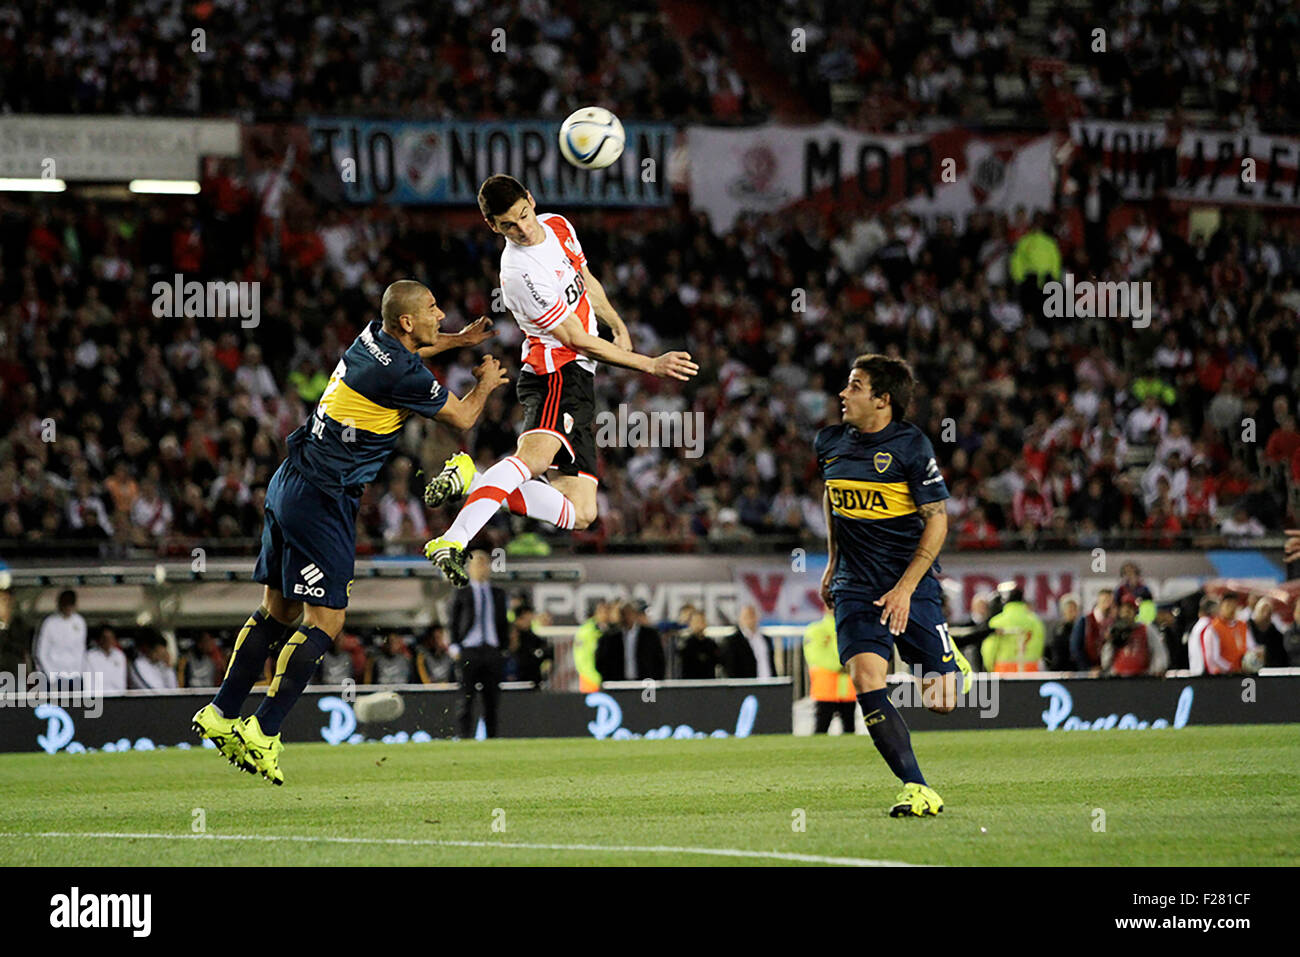 Buenos Aires, Argentina. 13th Sep, 2015. RIVER PLATE X BOCA JUNIORS - Alario of River Plate tries to hit the ball - Stock Image